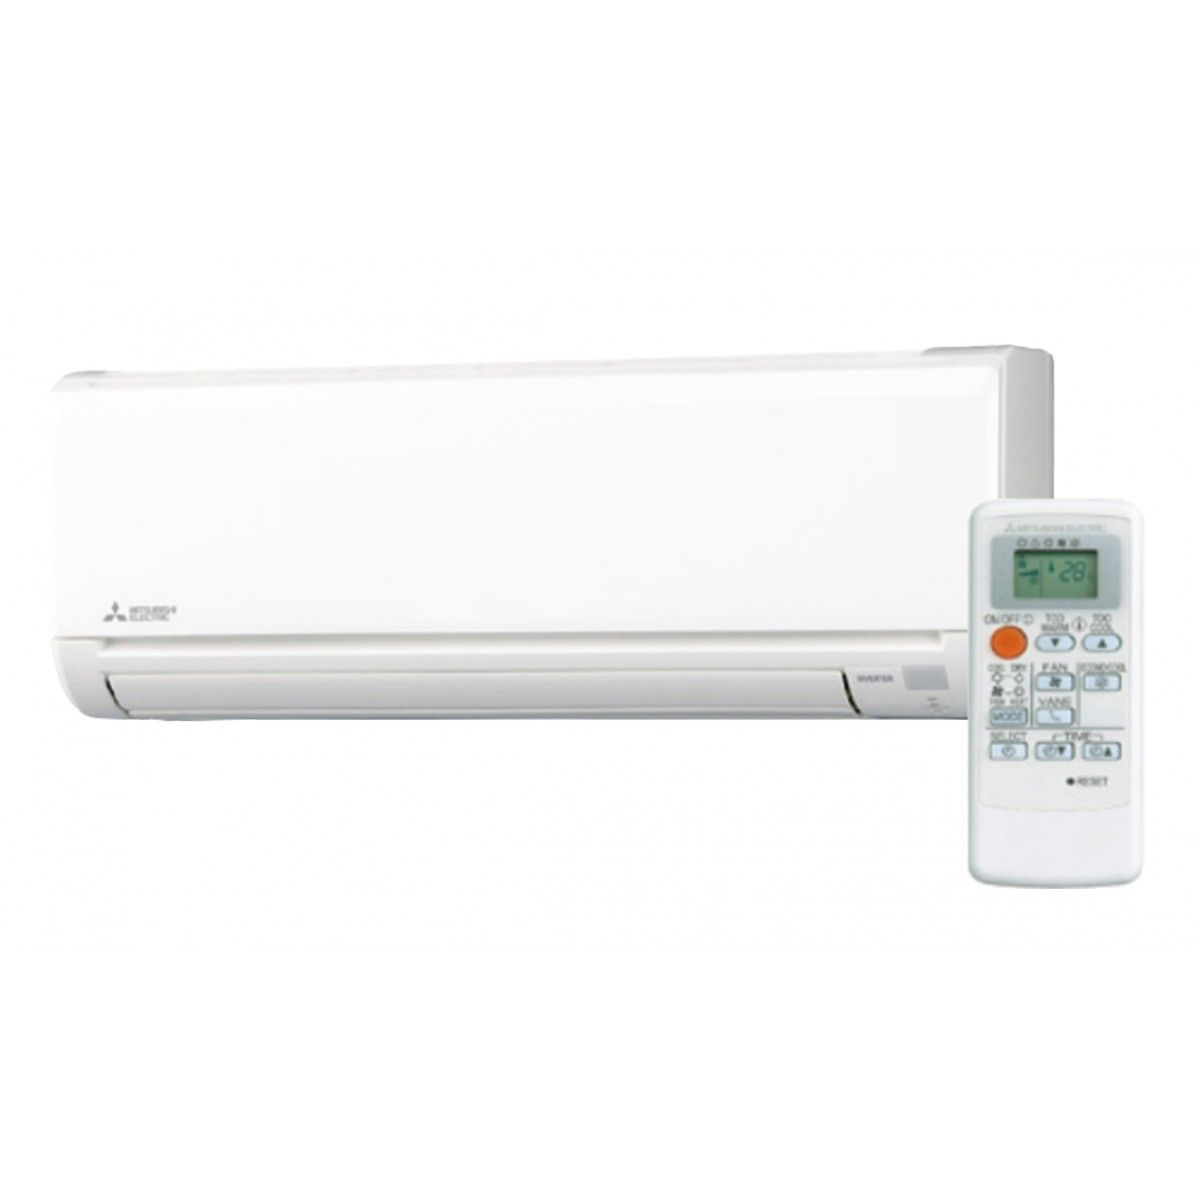 #AC511F Mitsubishi MSZ HM Series 24K BTU 18 SEER Heat Pump Wall  Recommended 357 Ac Heat Units Wall Mount pics with 1200x1200 px on helpvideos.info - Air Conditioners, Air Coolers and more